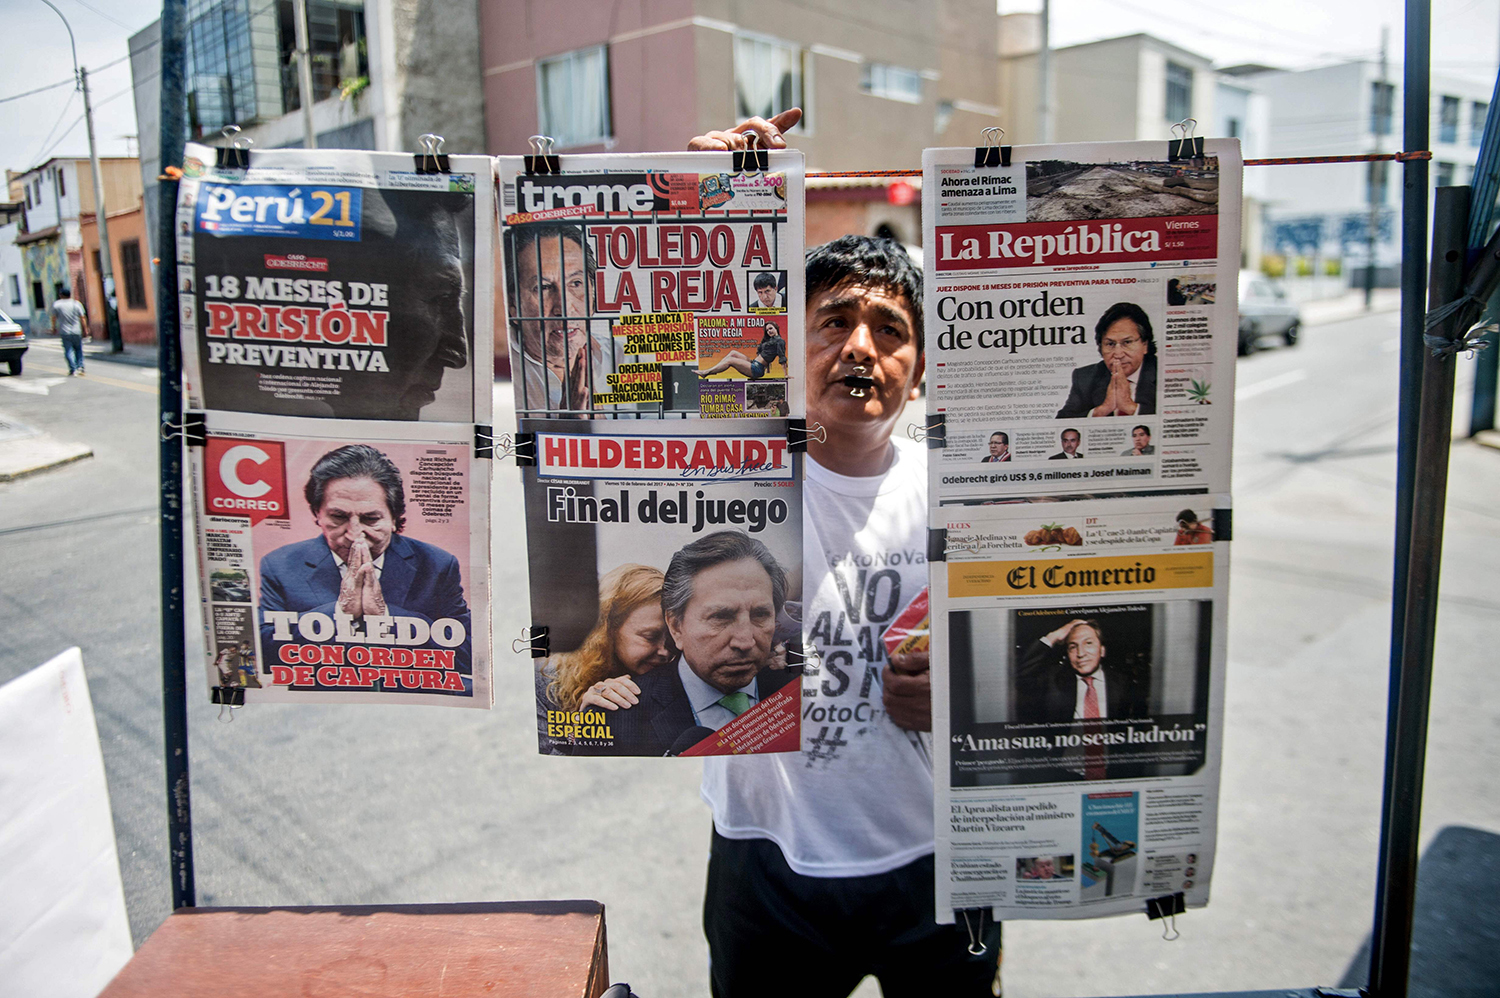 TOPSHOT - Newspapers with the portrait of former Peruvian President (2001-2006) Alejandro Toledo on their front pages, are displayed for sale in Lima on February 10, 2017. Peruvian police launched a manhunt Friday for ex-president Alejandro Toledo, once hailed as an anti-corruption champion, after a judge ordered his arrest over accusations he took $20 million in bribes from Brazilian construction company Odebrecht. / AFP PHOTO / ERNESTO BENAVIDES / TT / kod 444